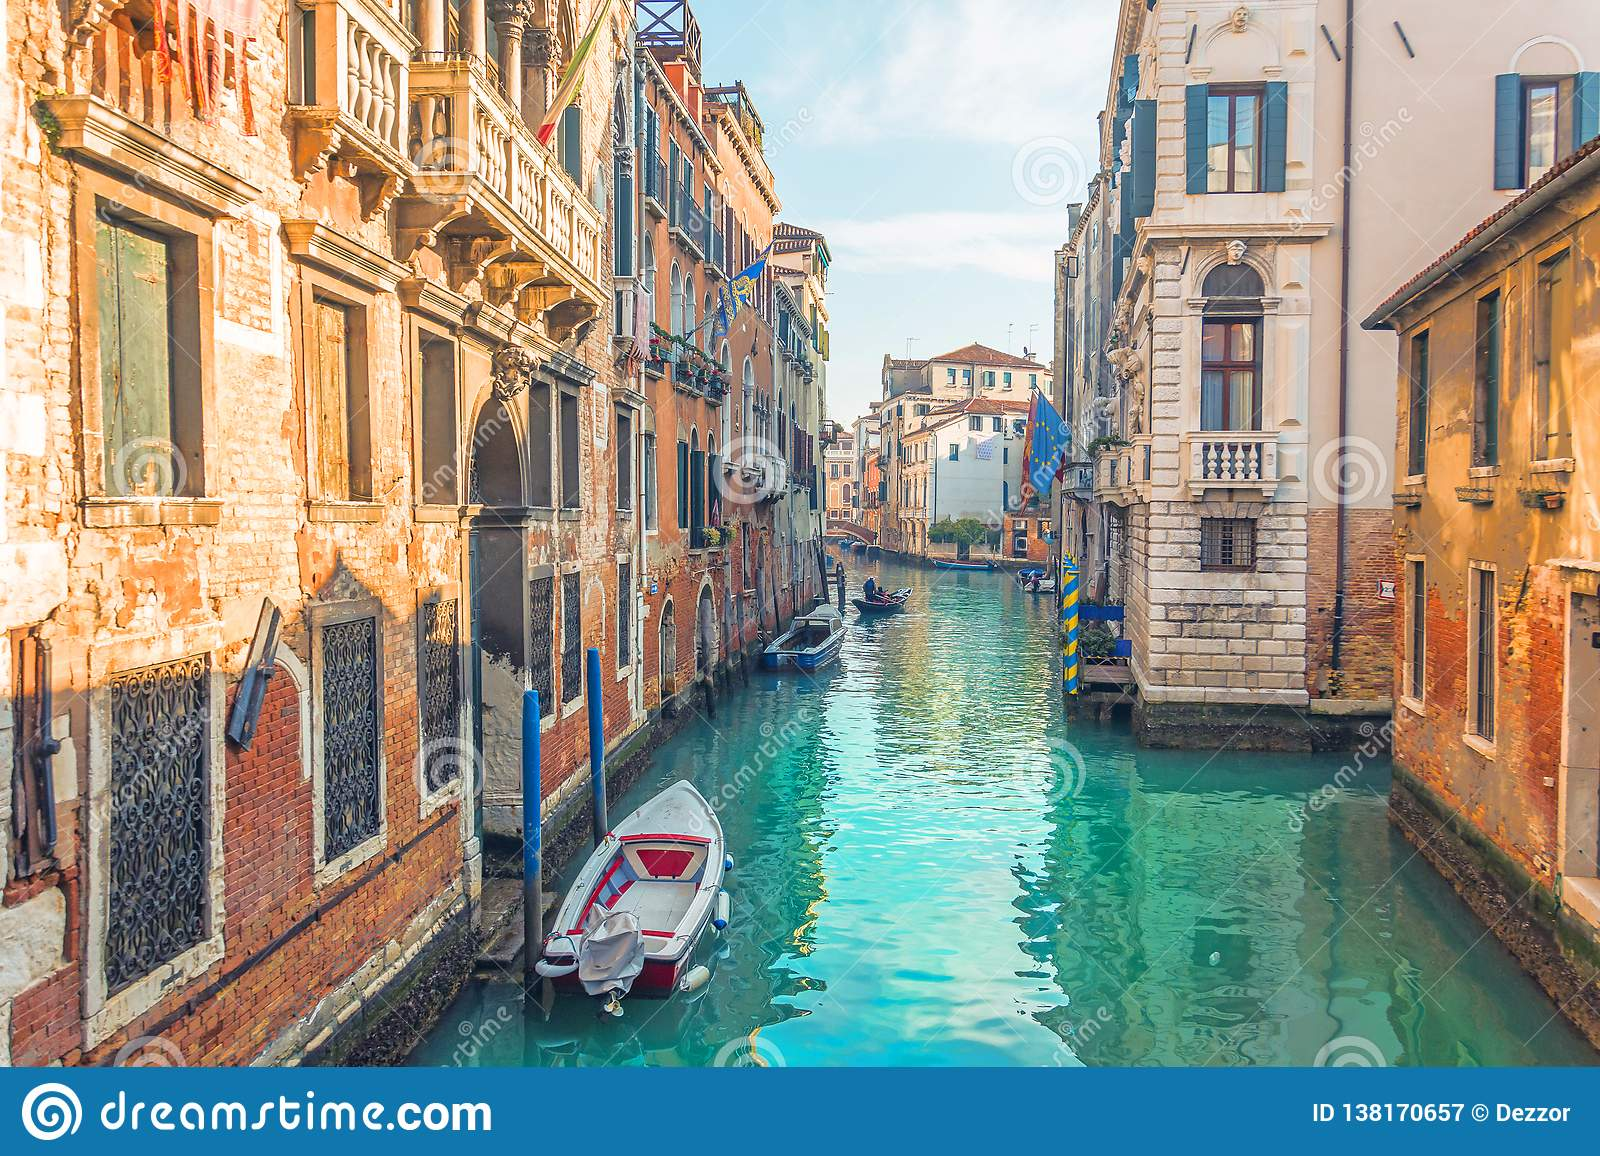 Canal in Venice, view of the architecture and buildings. Typical urban view